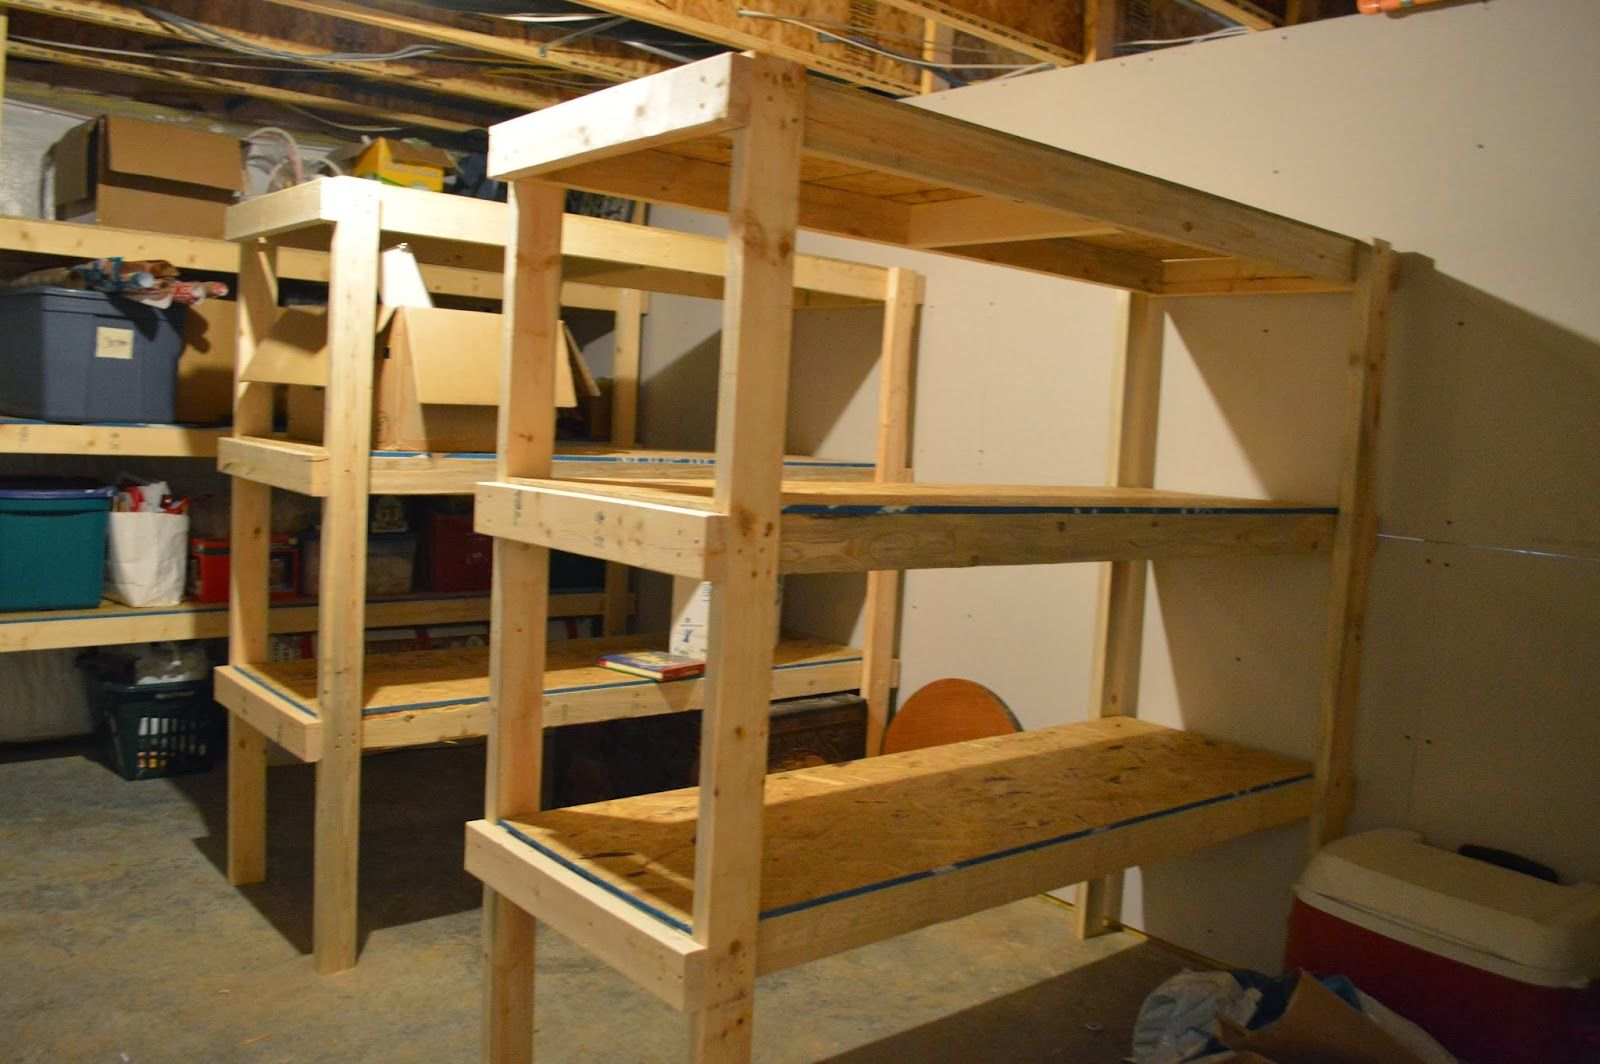 unfinished basement storage ideas. Basement Organization Ideas  An Unfinished Tour And How We Built Storage Shelves Our